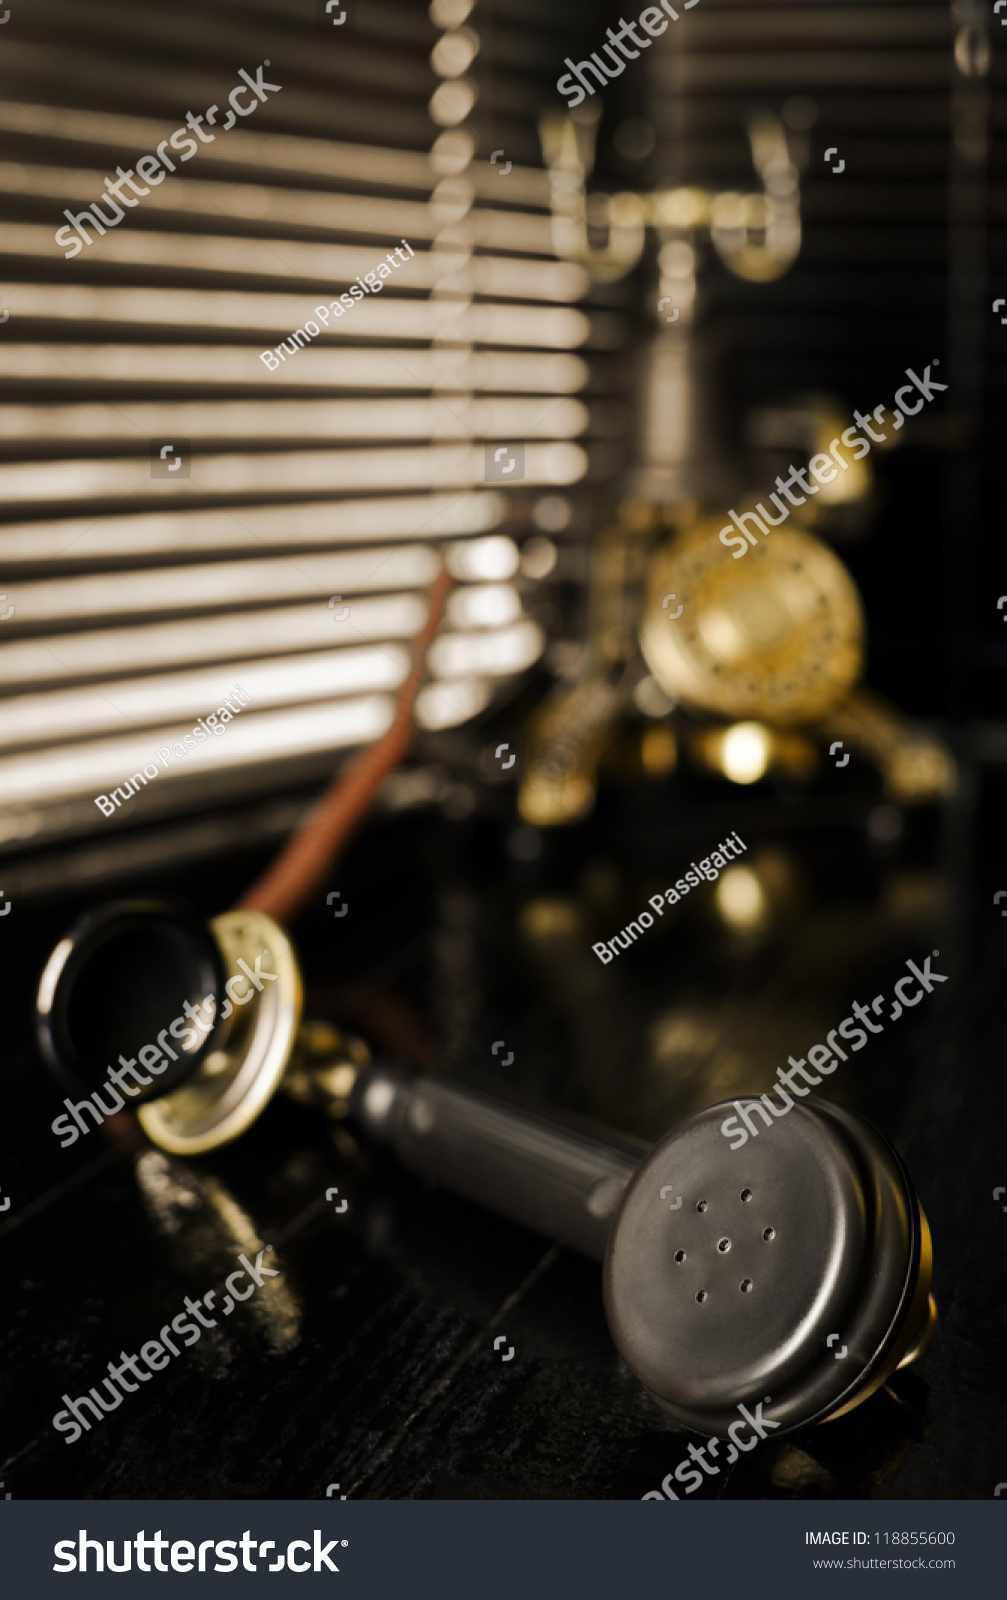 vintage telephone film noir scene with retro phone and blinds stock photo 118855600 shutterstock. Black Bedroom Furniture Sets. Home Design Ideas